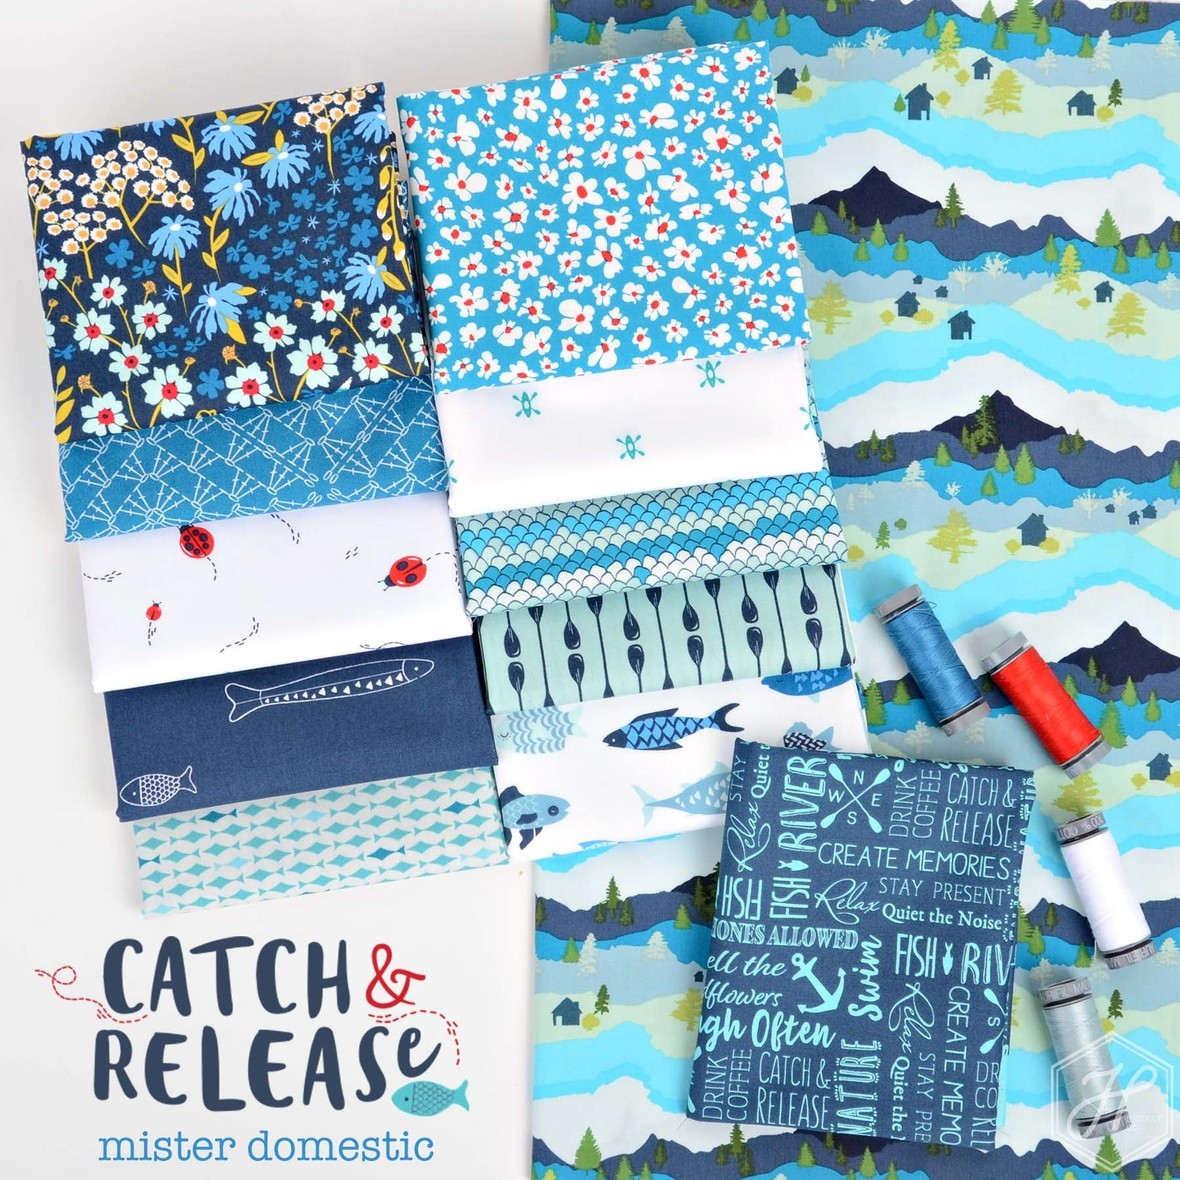 Catch and Release Fabric Poster Mister Domestic for Art Gallery at Hawthorne Supply Co